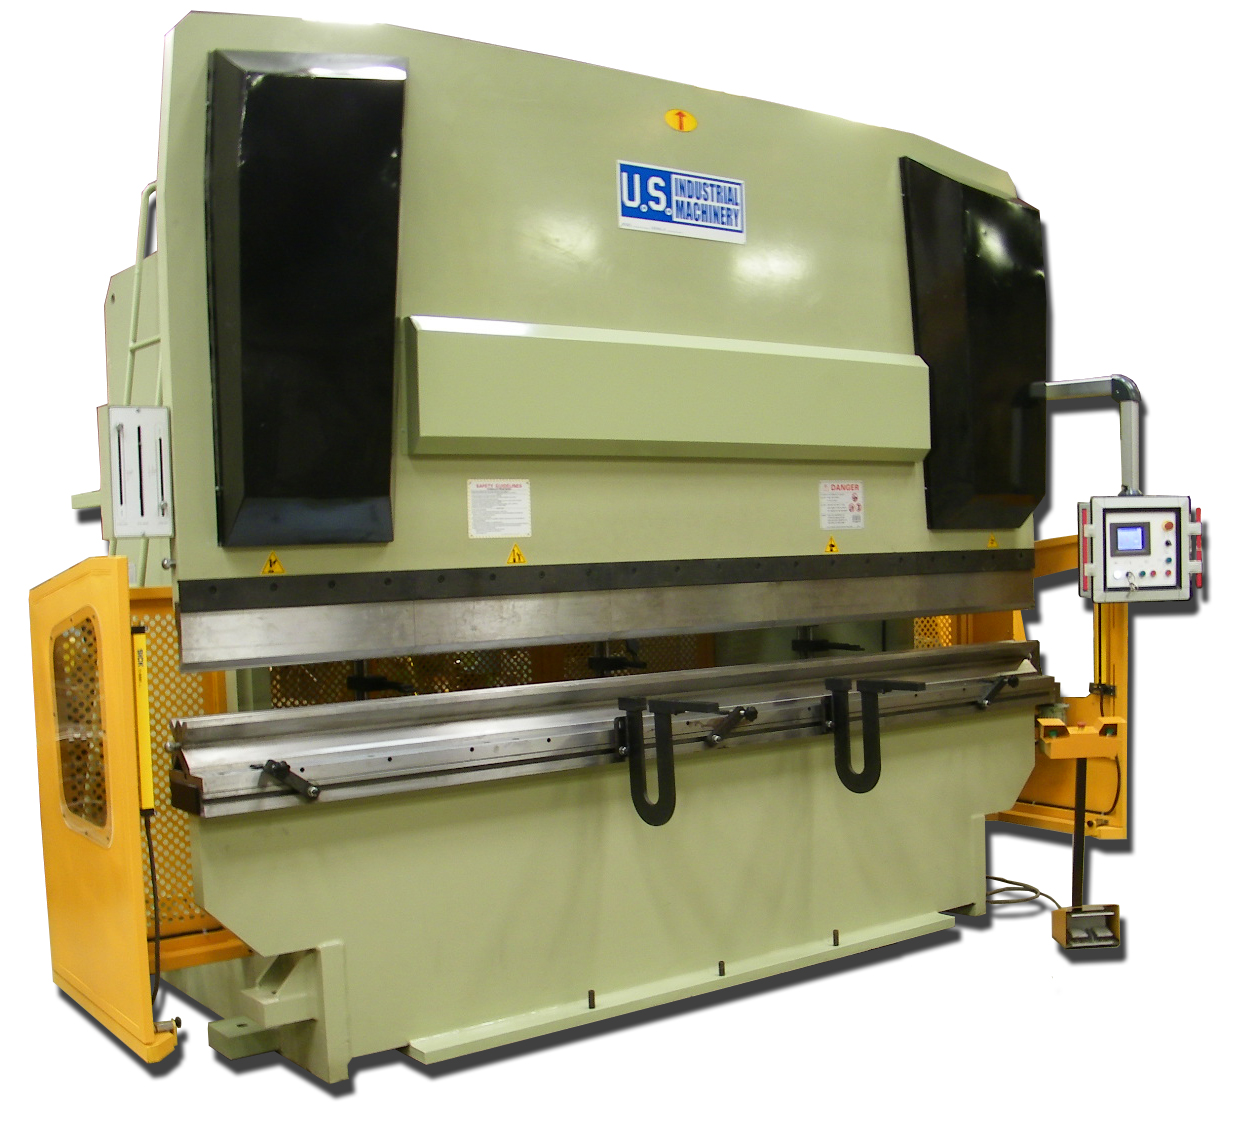 NEW 440 TON x 13' US INDUSTRIAL MODEL USHB440-13 CNC HYDRAULIC PRESS BRAKE WITH AUTO CROWN